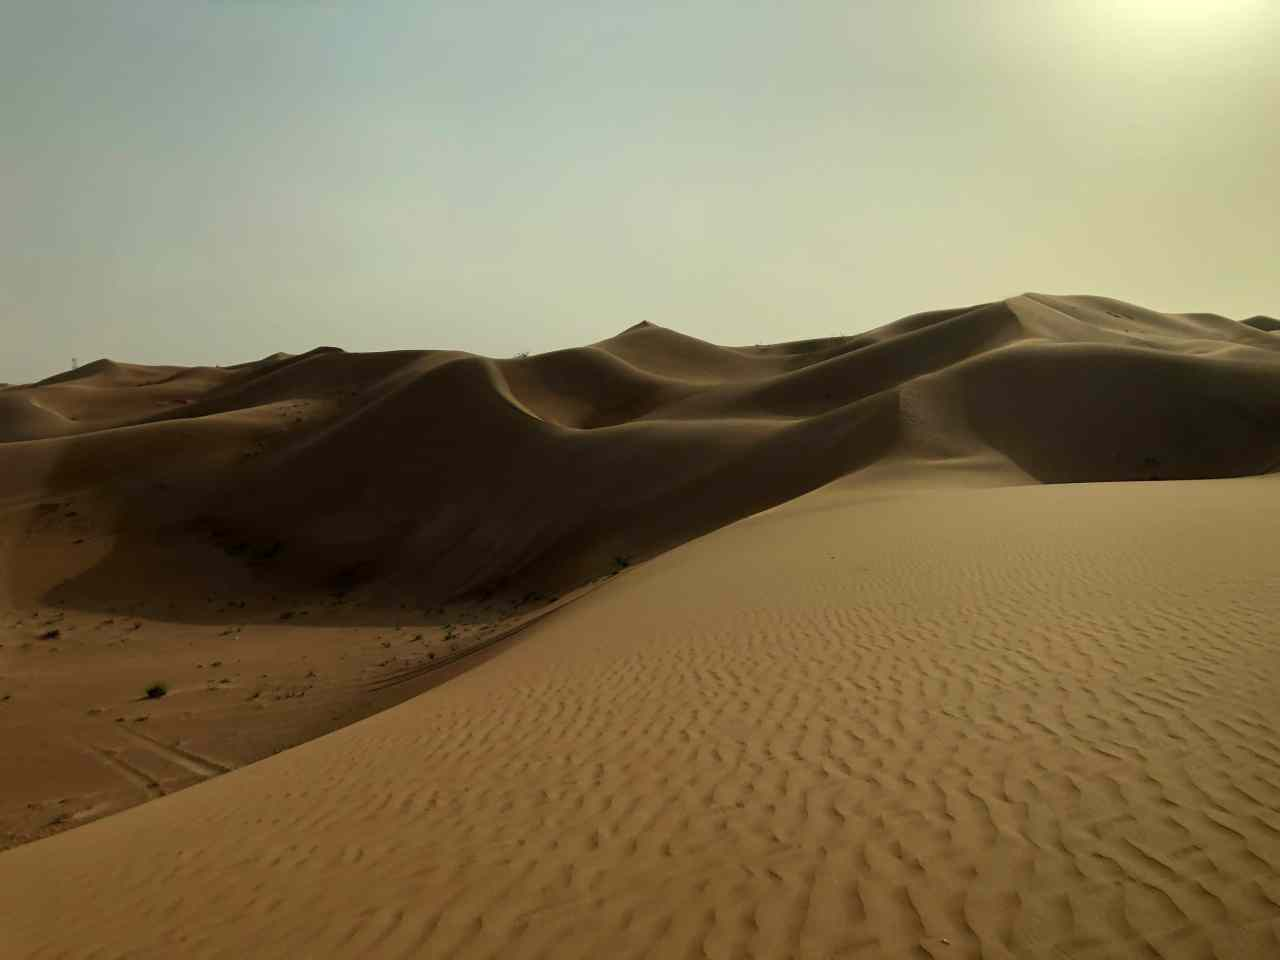 Desert in Dubai or location for Tatooine...